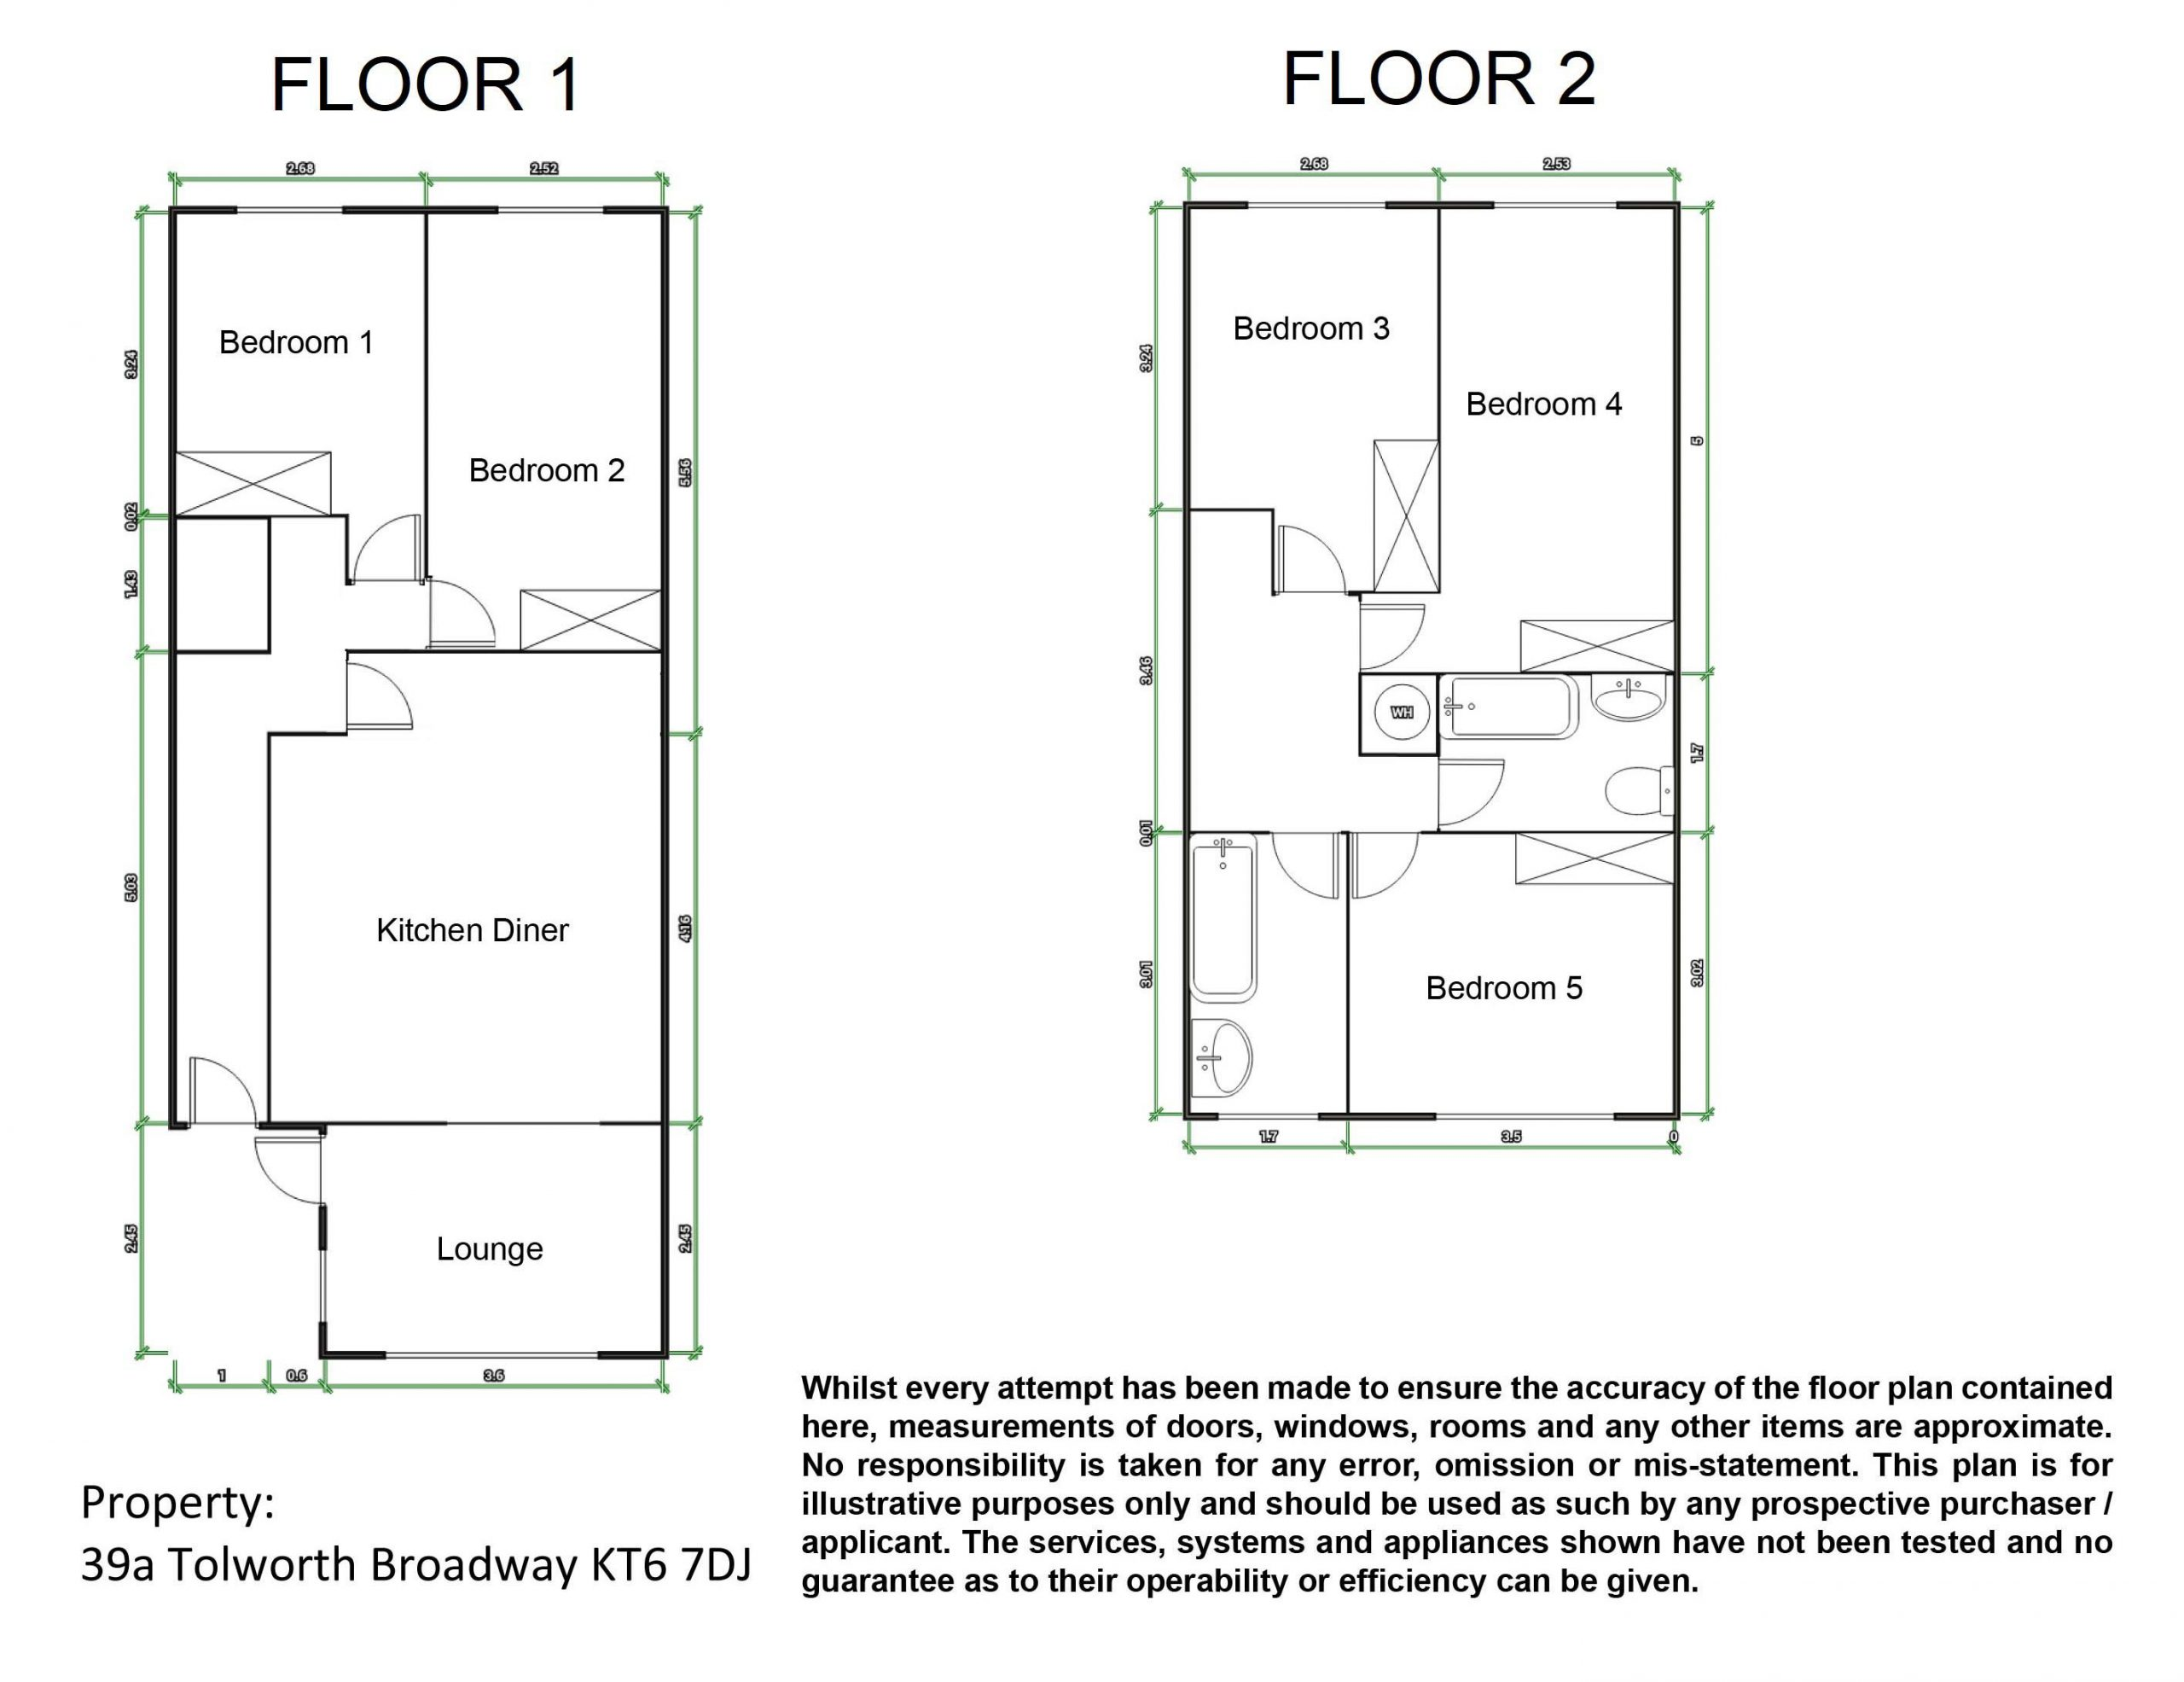 Tolworth Broadway 39a – Floor Plans